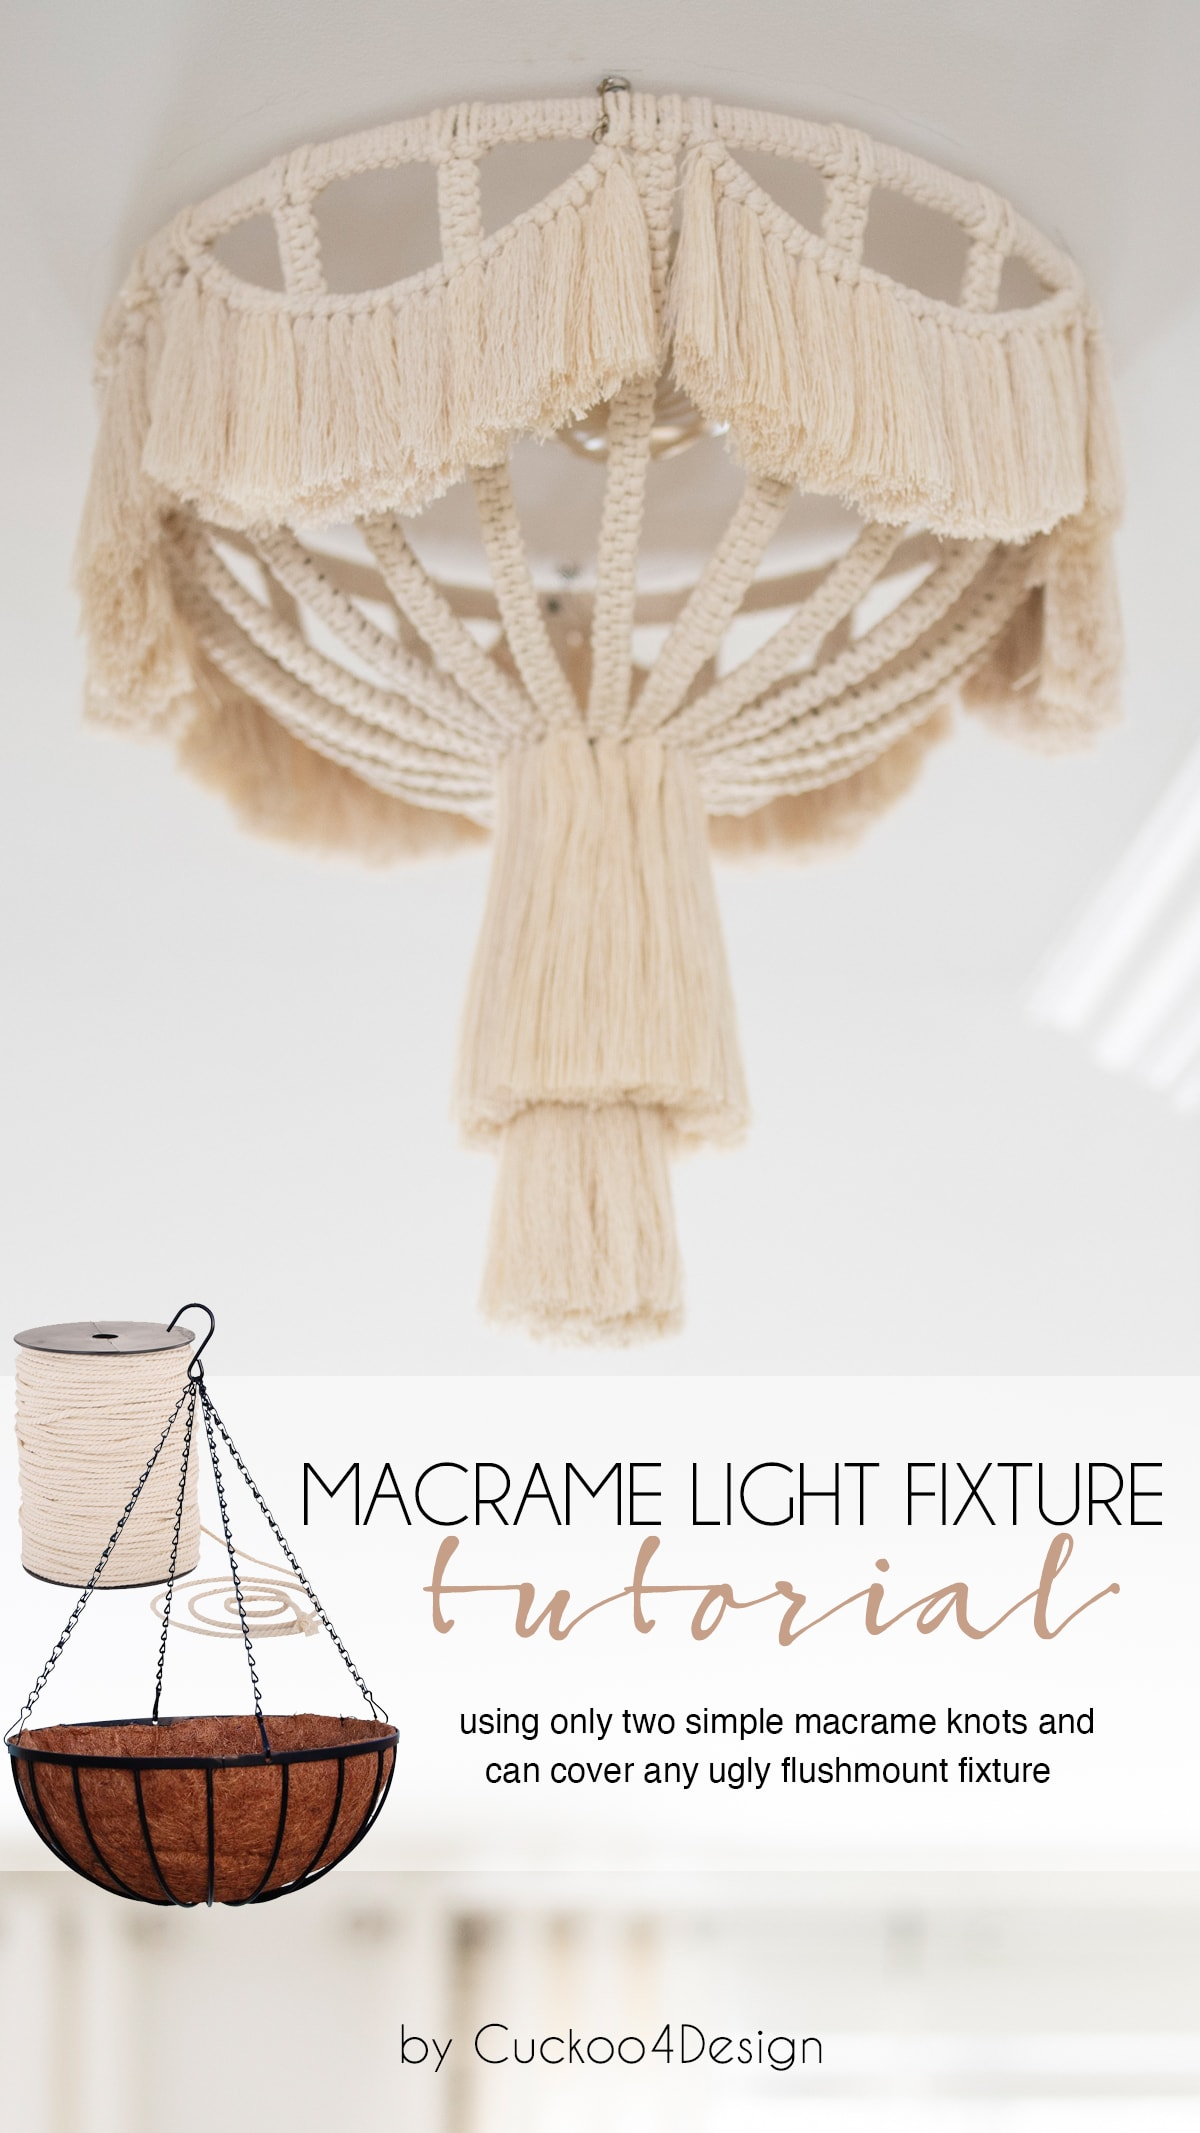 macrame light fixture tutorial using only two simple macrame knots